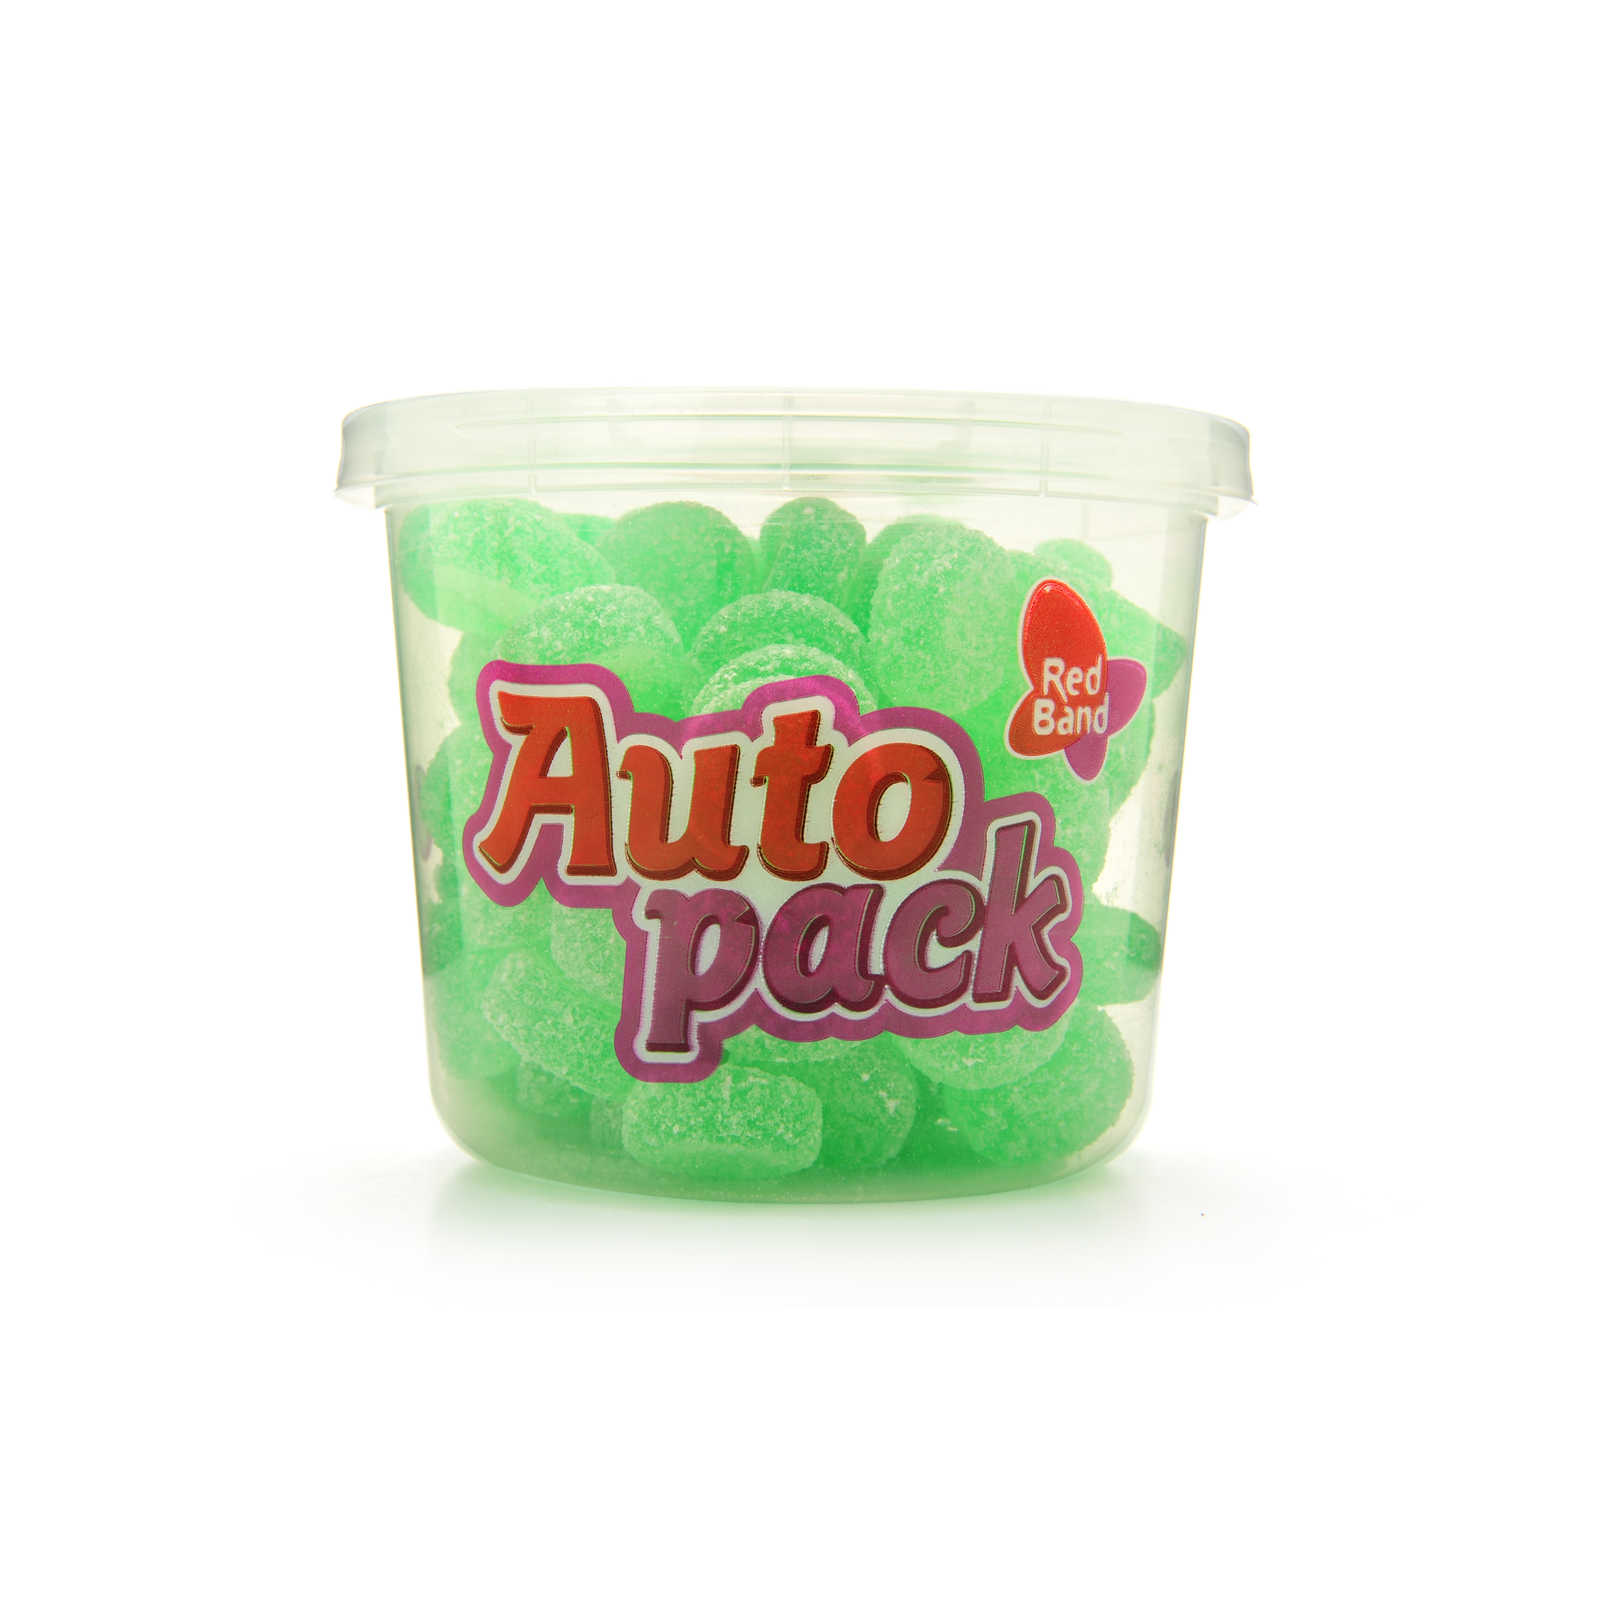 Autopack-Red Band